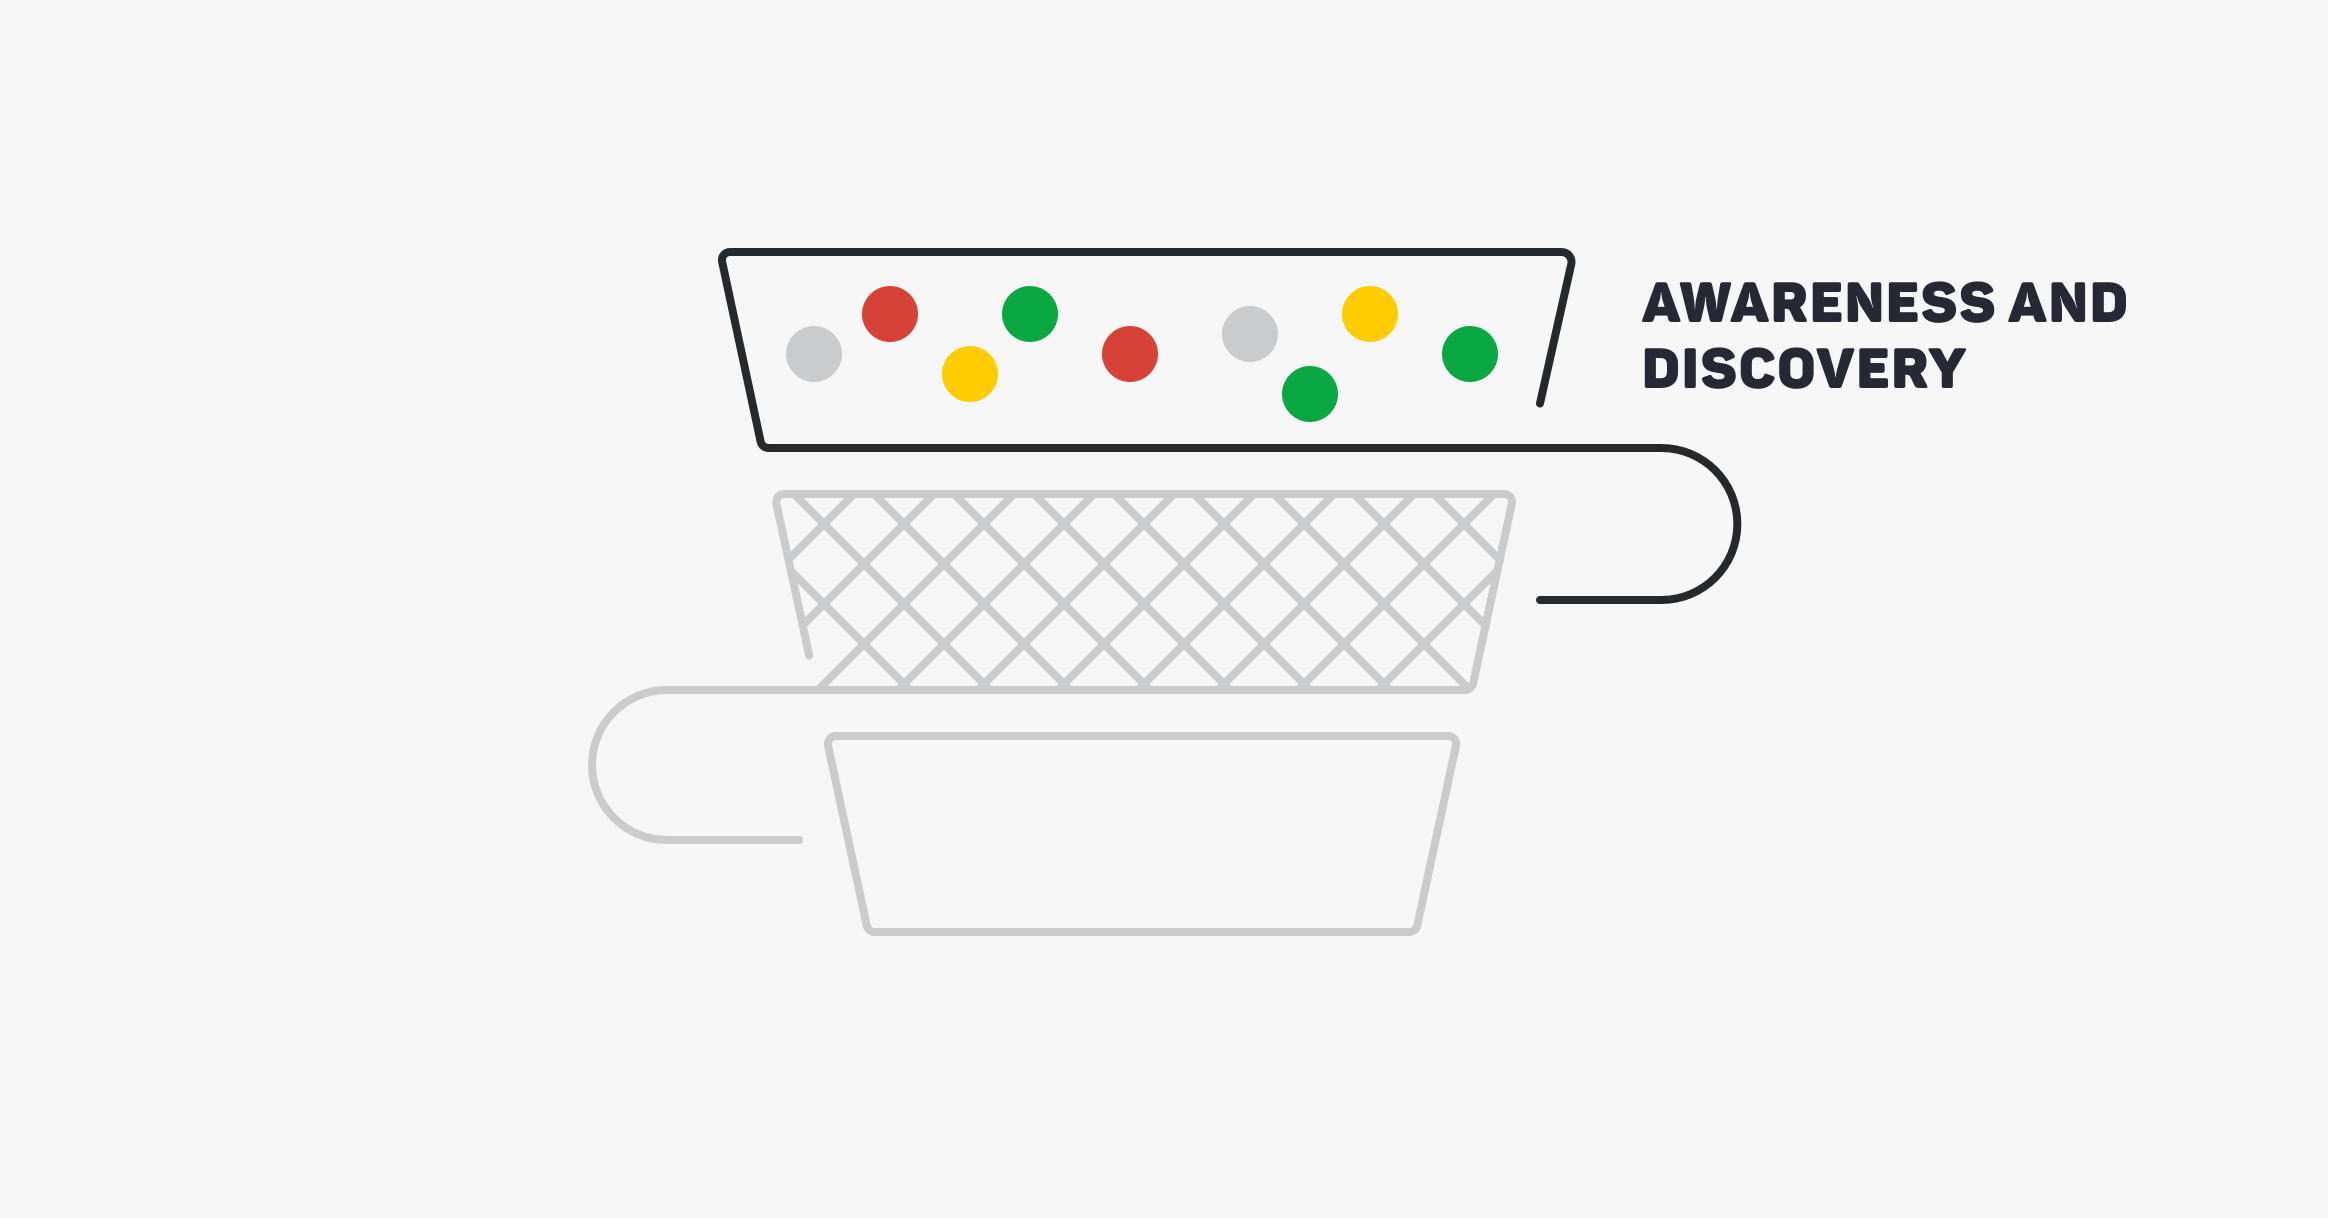 Top of Funnel: Awareness and Discovery